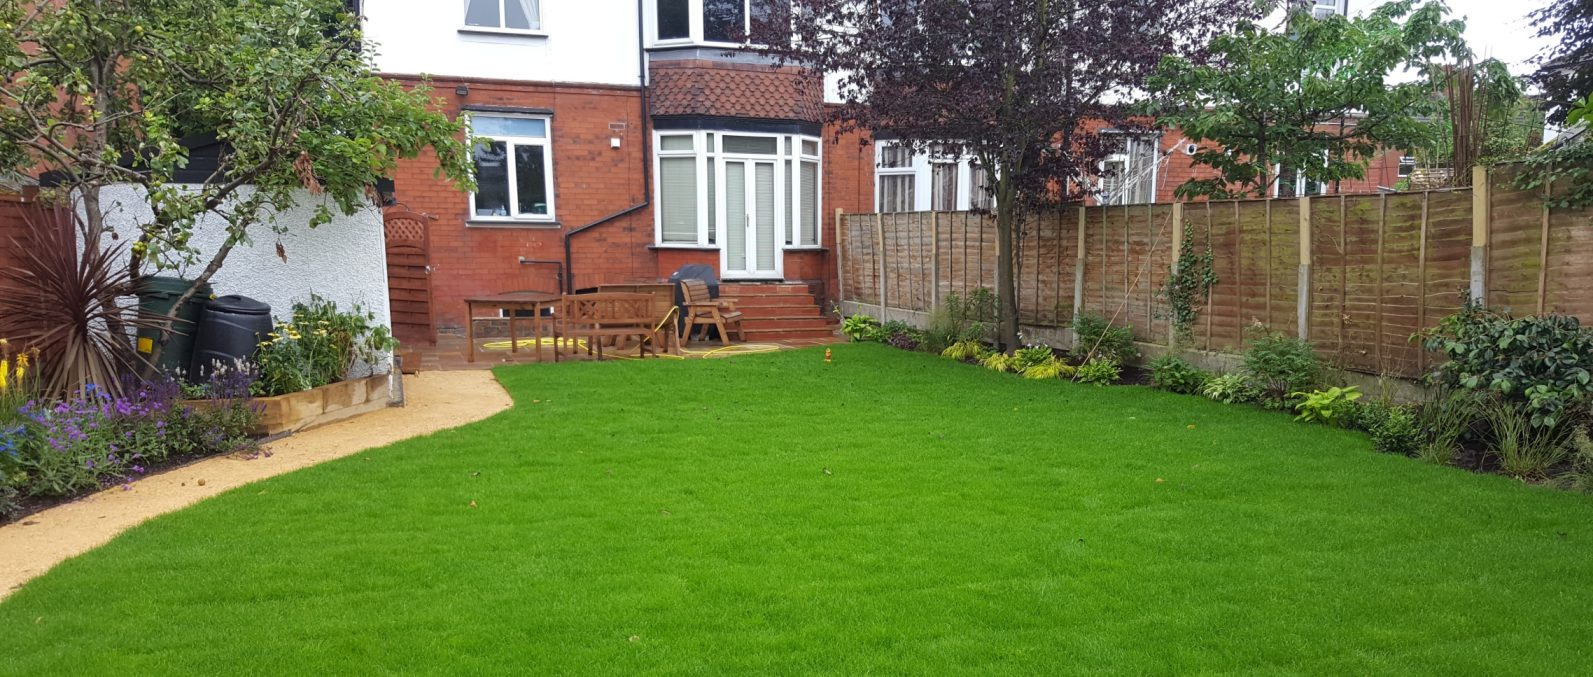 Lawn care and turf laying service